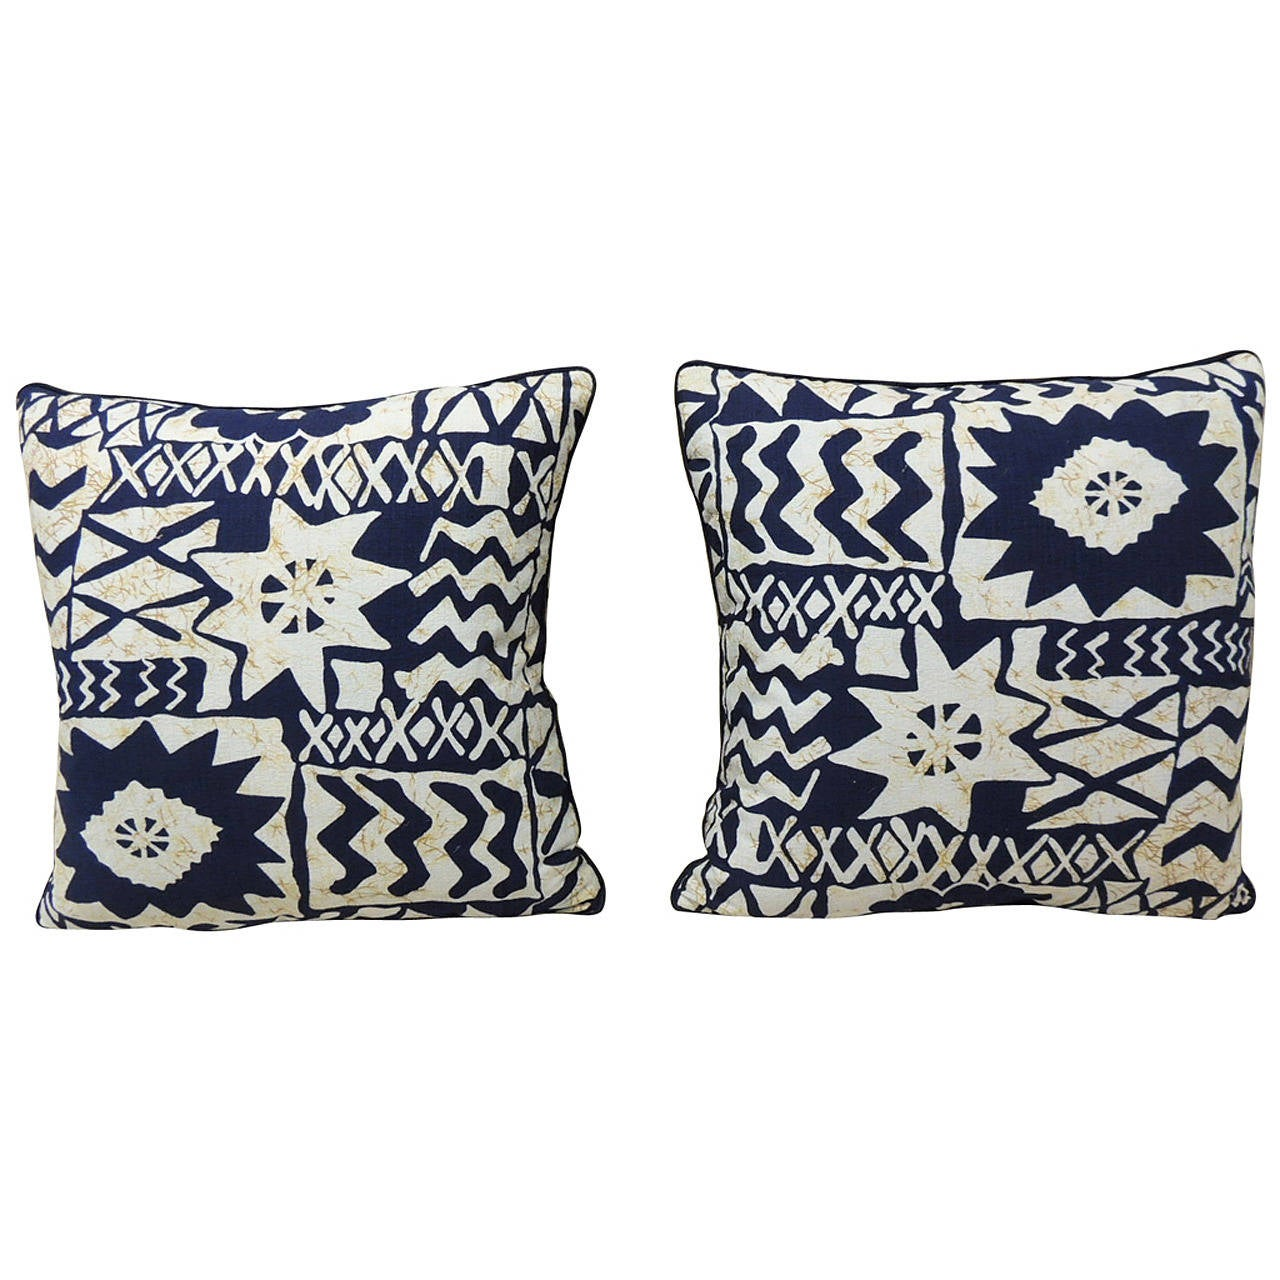 Vintage Decorative Pillow : Vintage Pair of Blue and White Graphic Barkcloth Decorative Pillows For Sale at 1stdibs